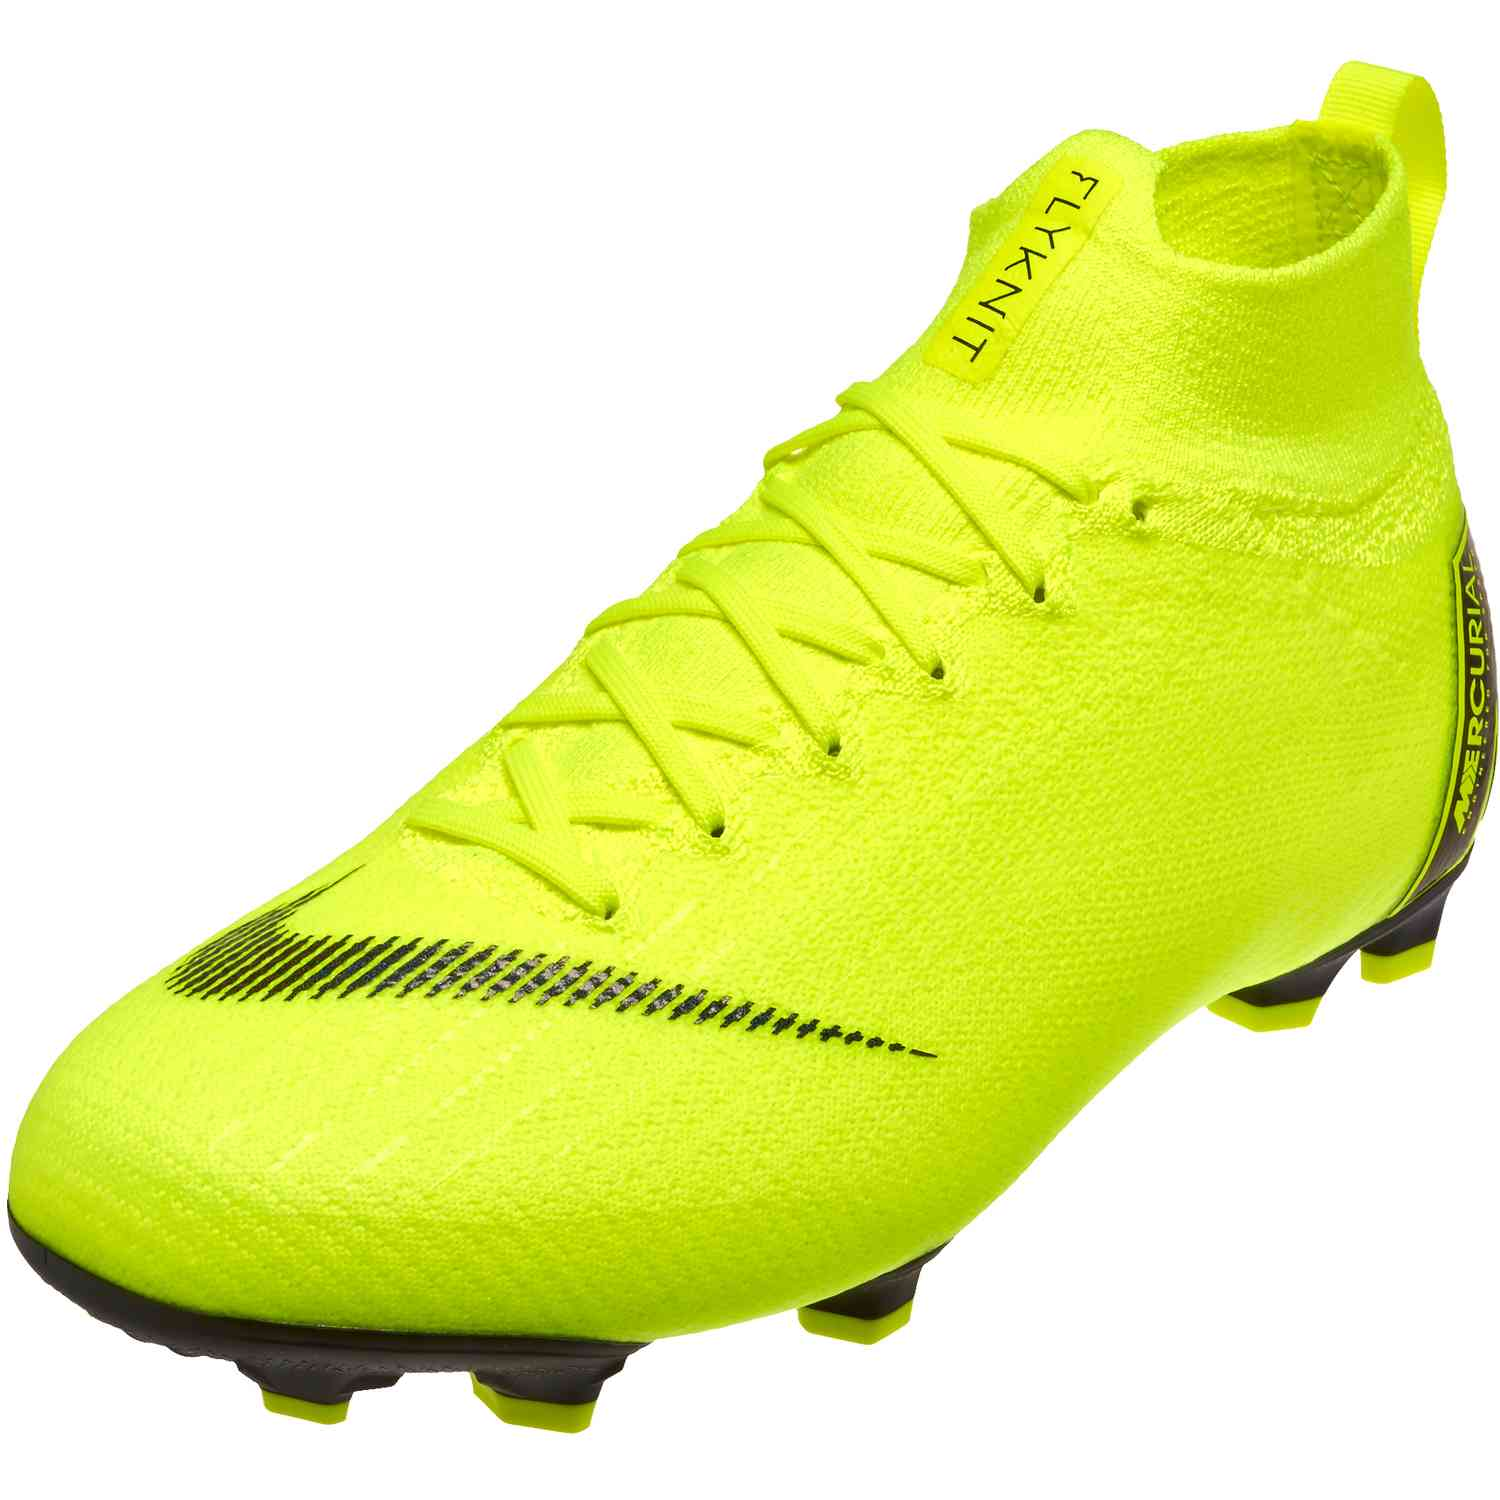 32d78999d Kids Nike Mercurial Superfly 6 Elite FG - Volt Black - Soccer Master